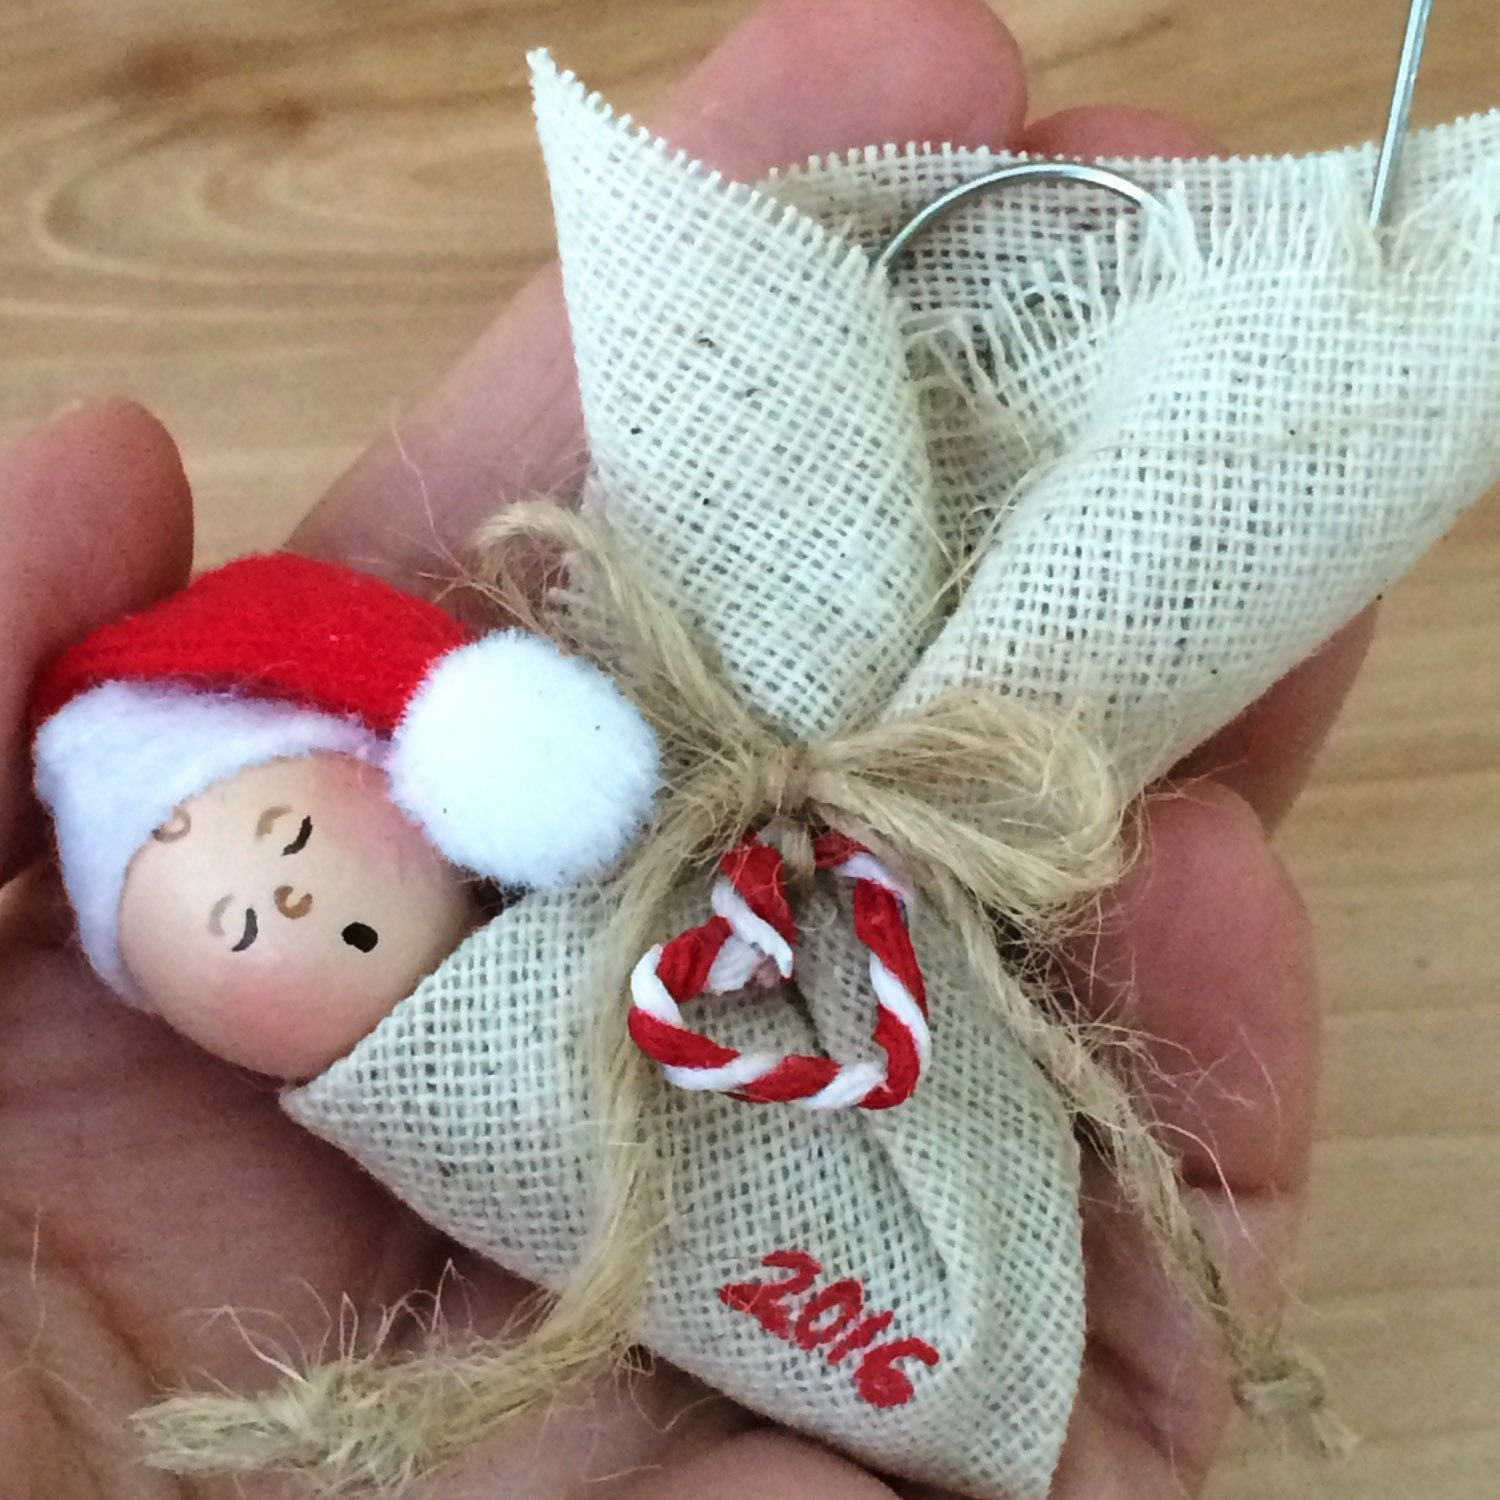 Baby S First Christmas Ornament Etsy